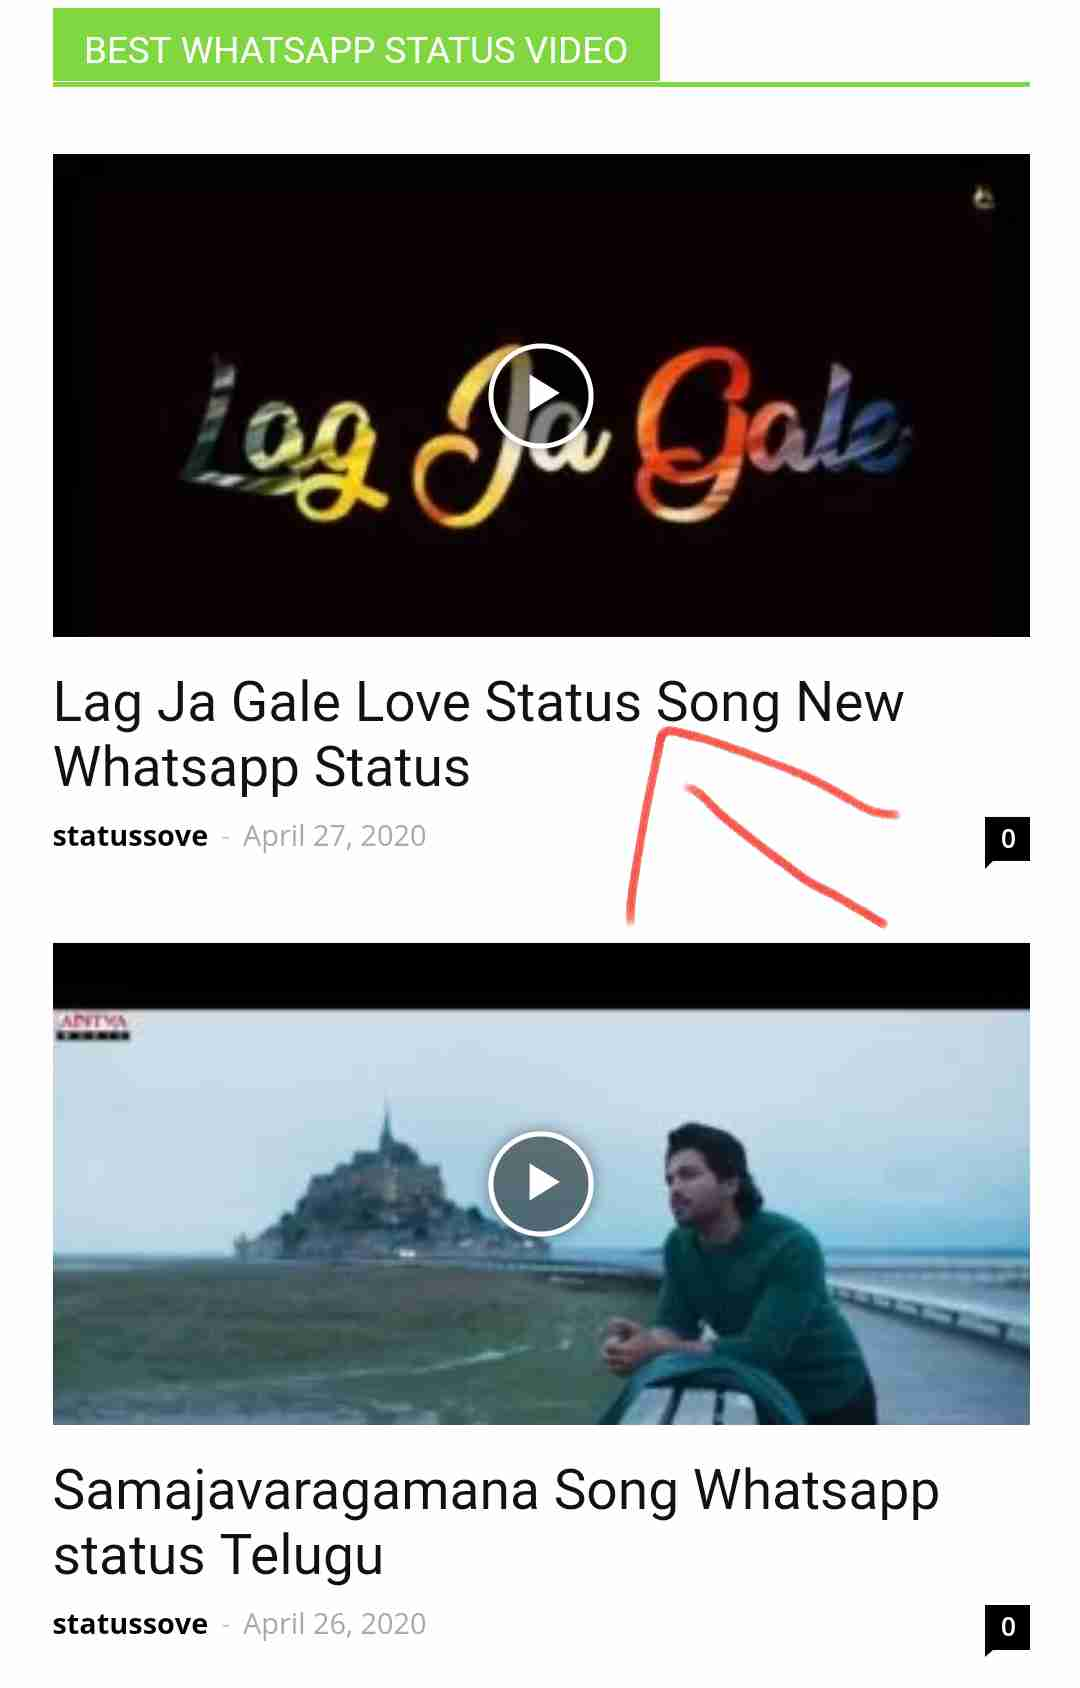 How to Download Whatsapp Status Video and Photos - Statussove